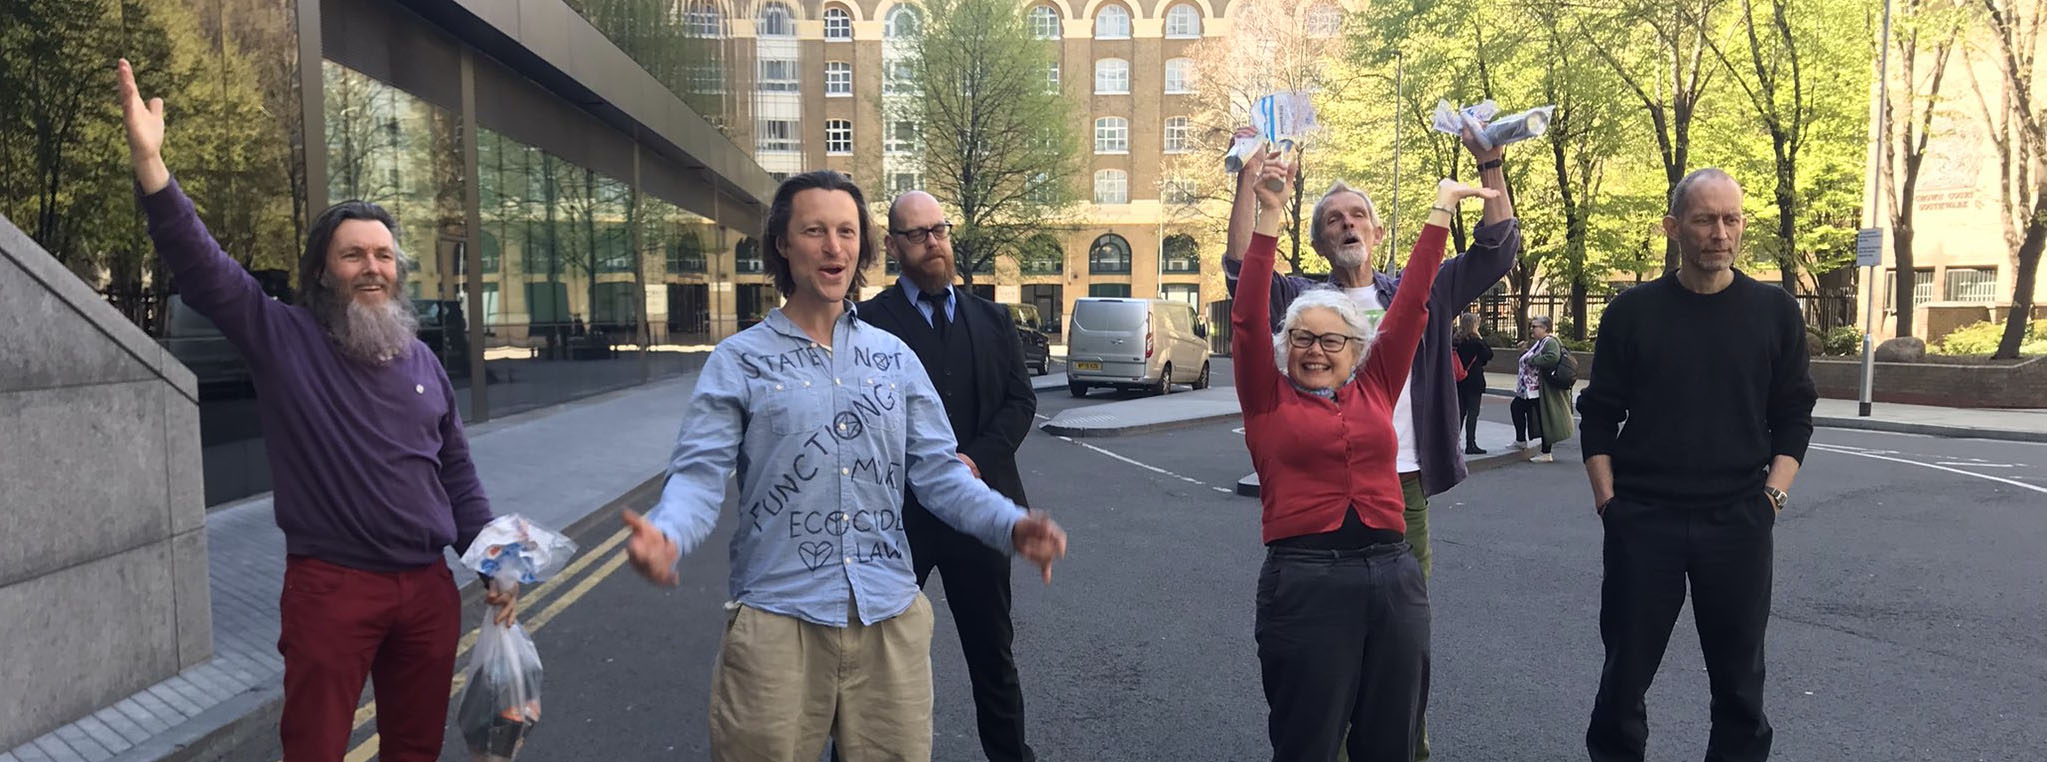 Six of the shell 7 outside Southwark Crown court